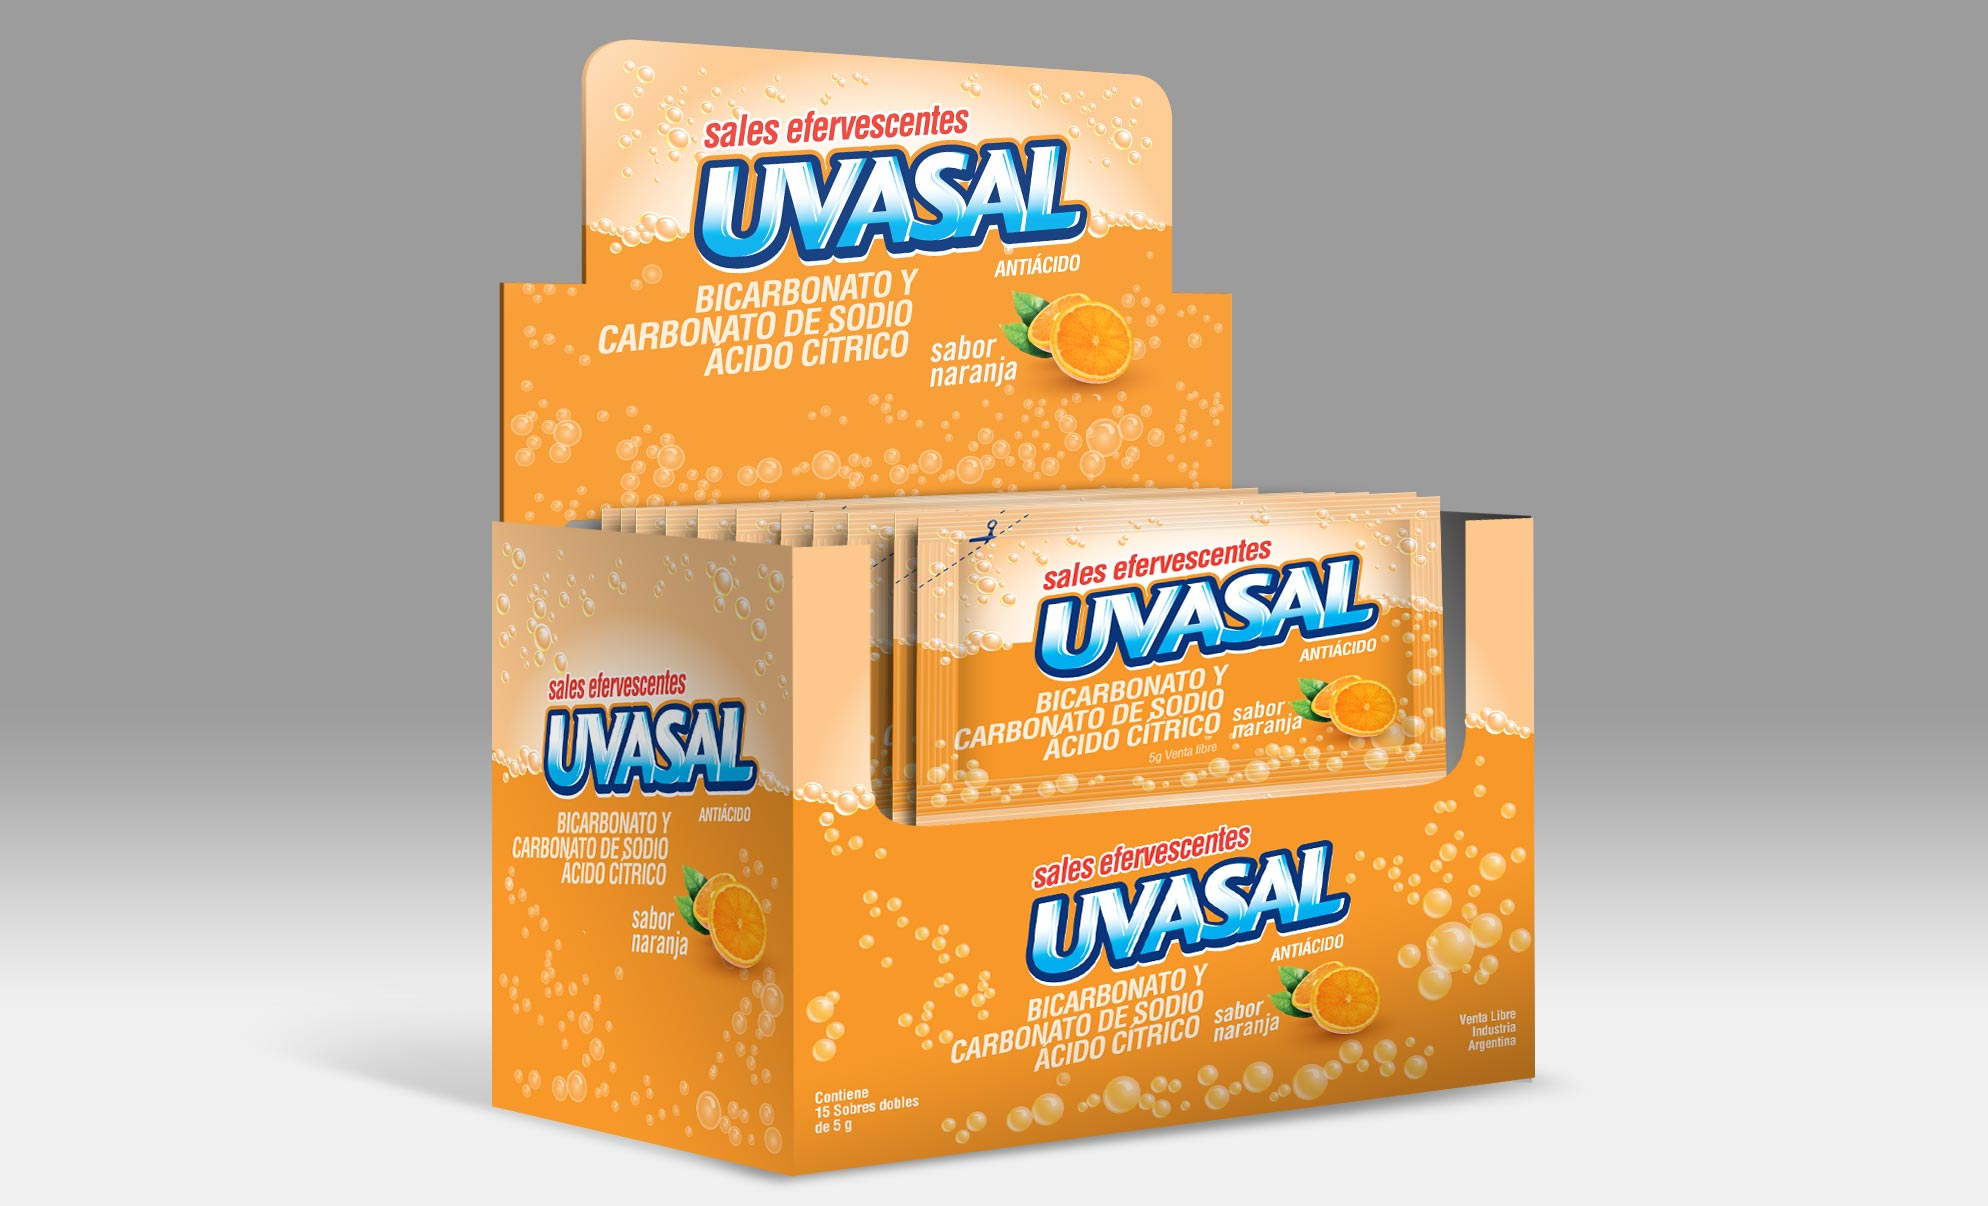 Glaxosmithkline Uvasal POP Packaging Naranja